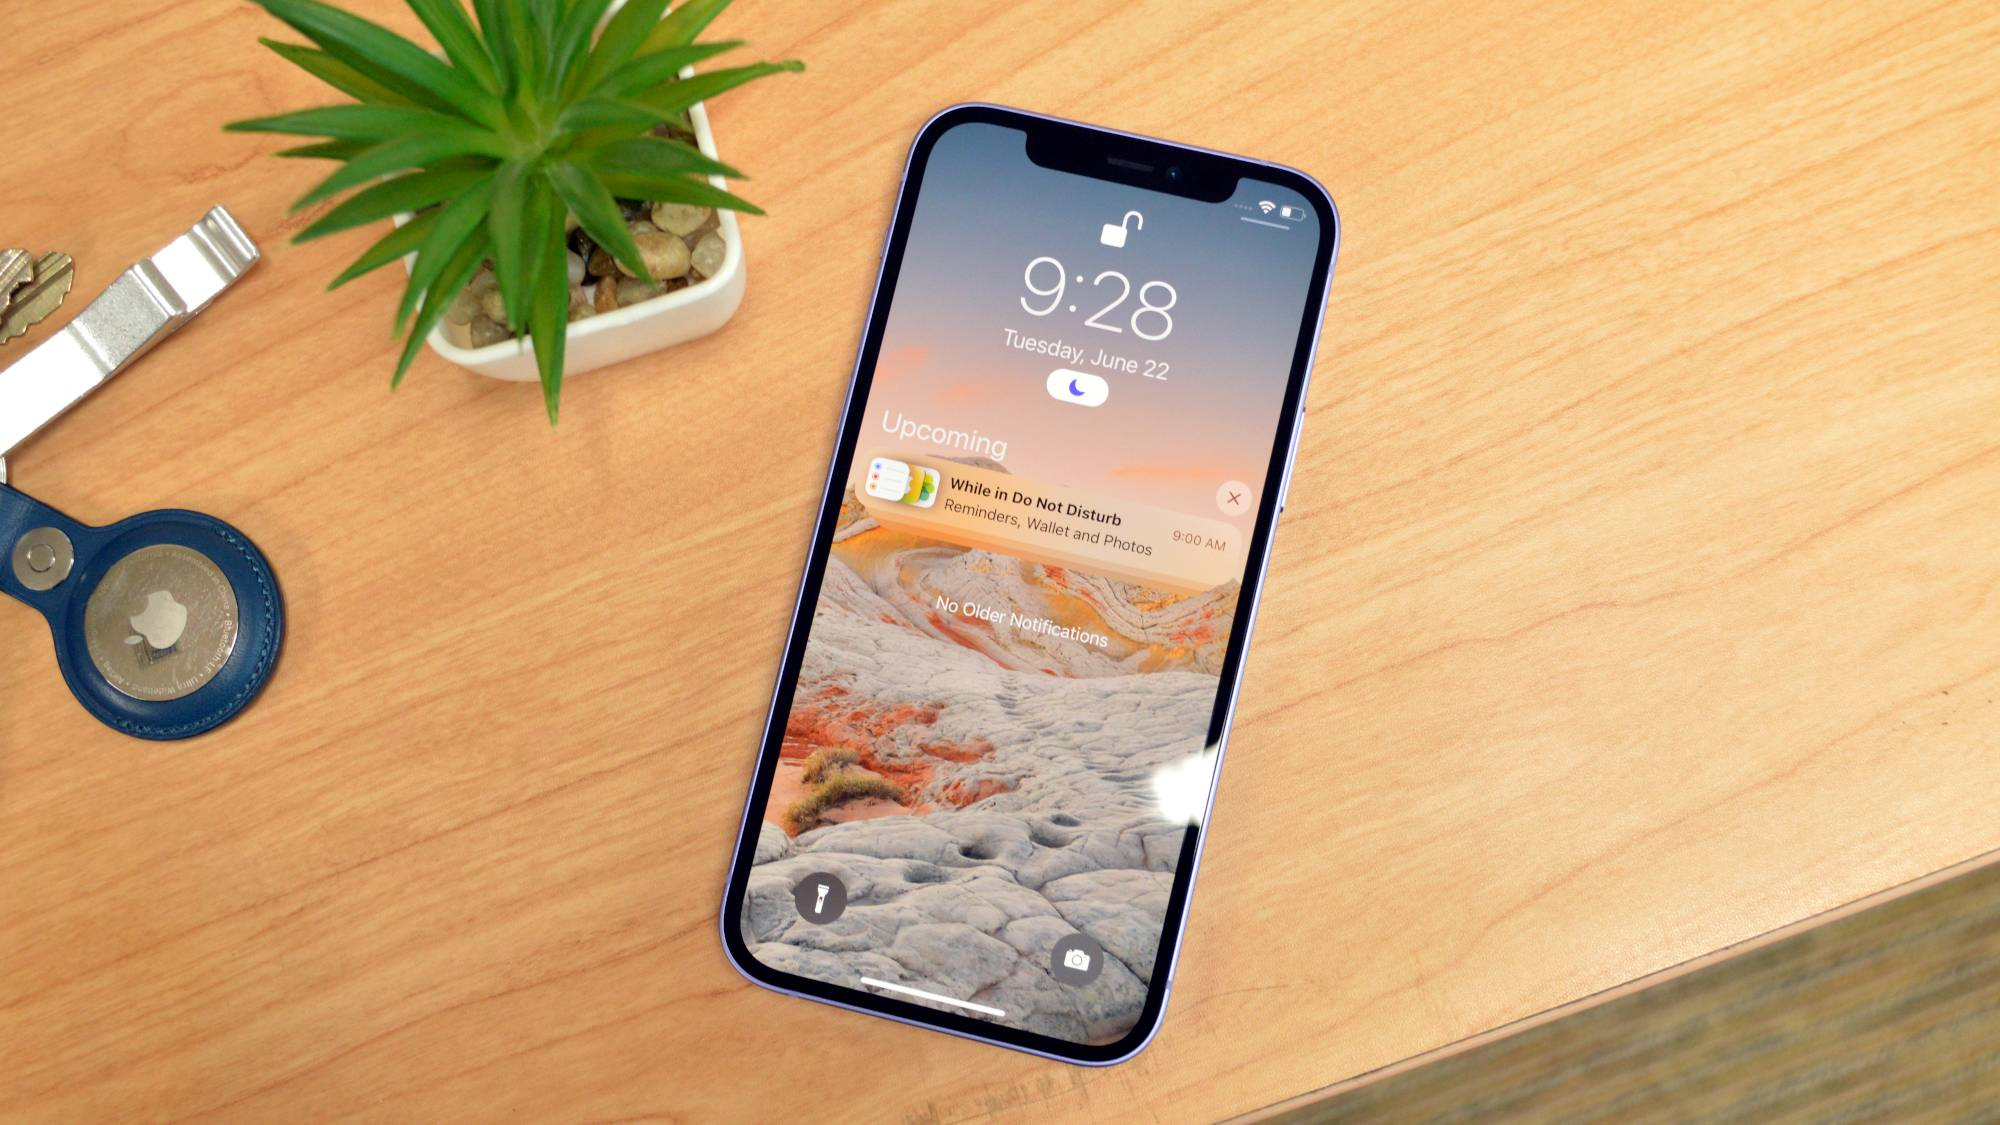 iPhone XR iOS 15 , iPhone XR iOS 15 Cam ,iPhone XR iOS 15 Camera test,iPhone XR iOS 15 Screen Repair, iPhone XR iOS 15 Camera, iPhone XR iOS 15 Unboxing, iPhone XR iOS 15 Hands-on